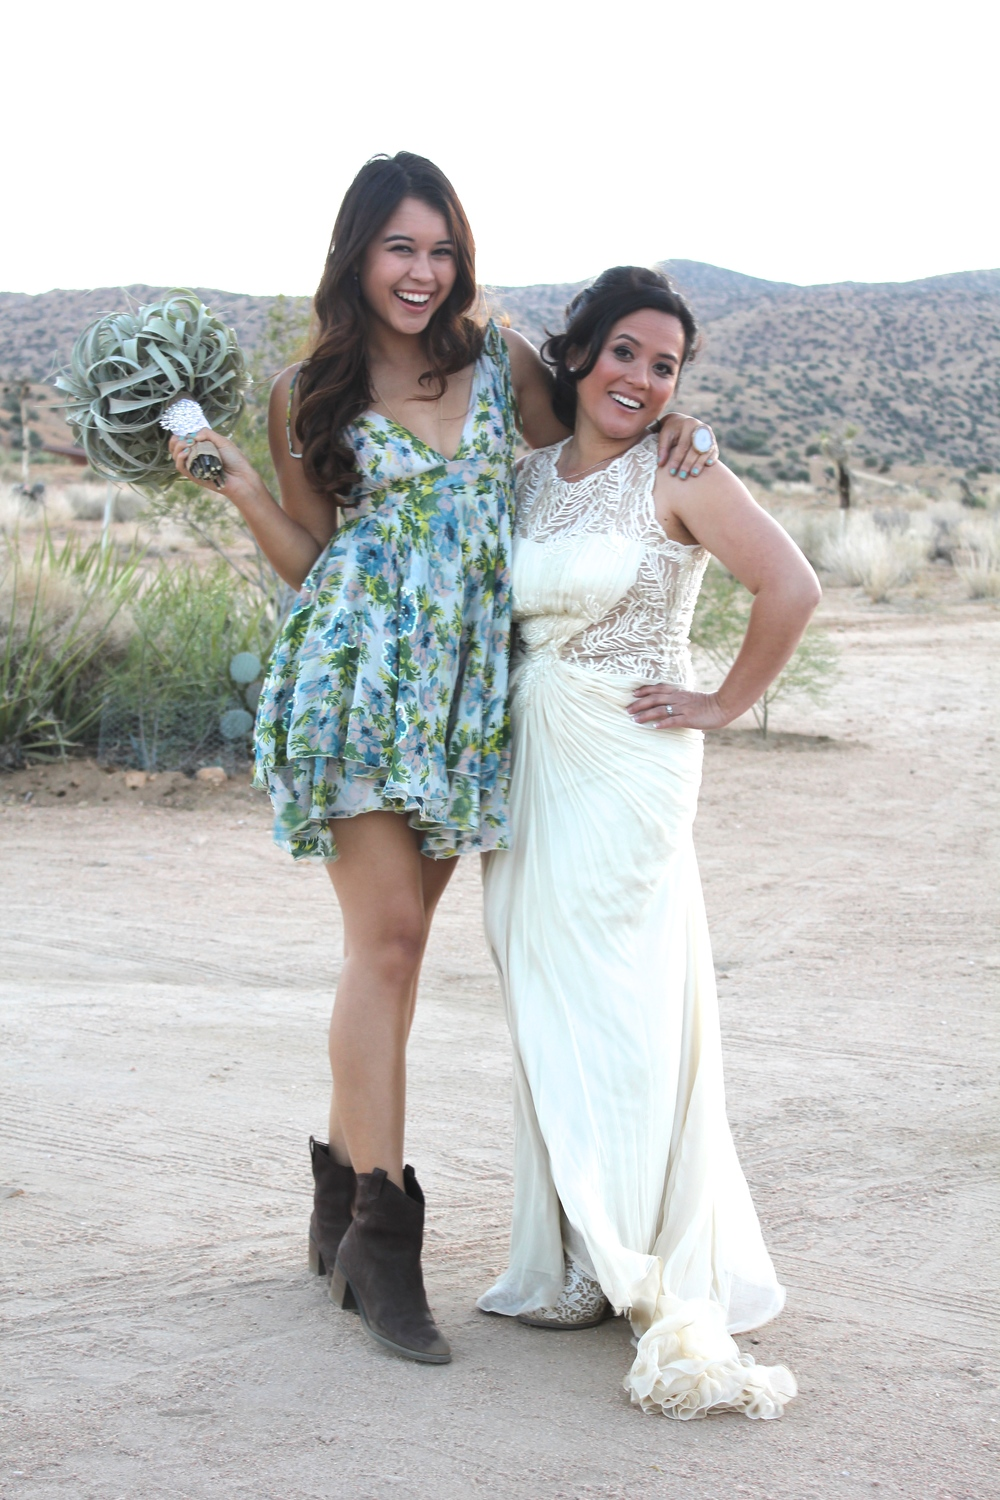 The gorgeous desert princess bride, Ngoc!